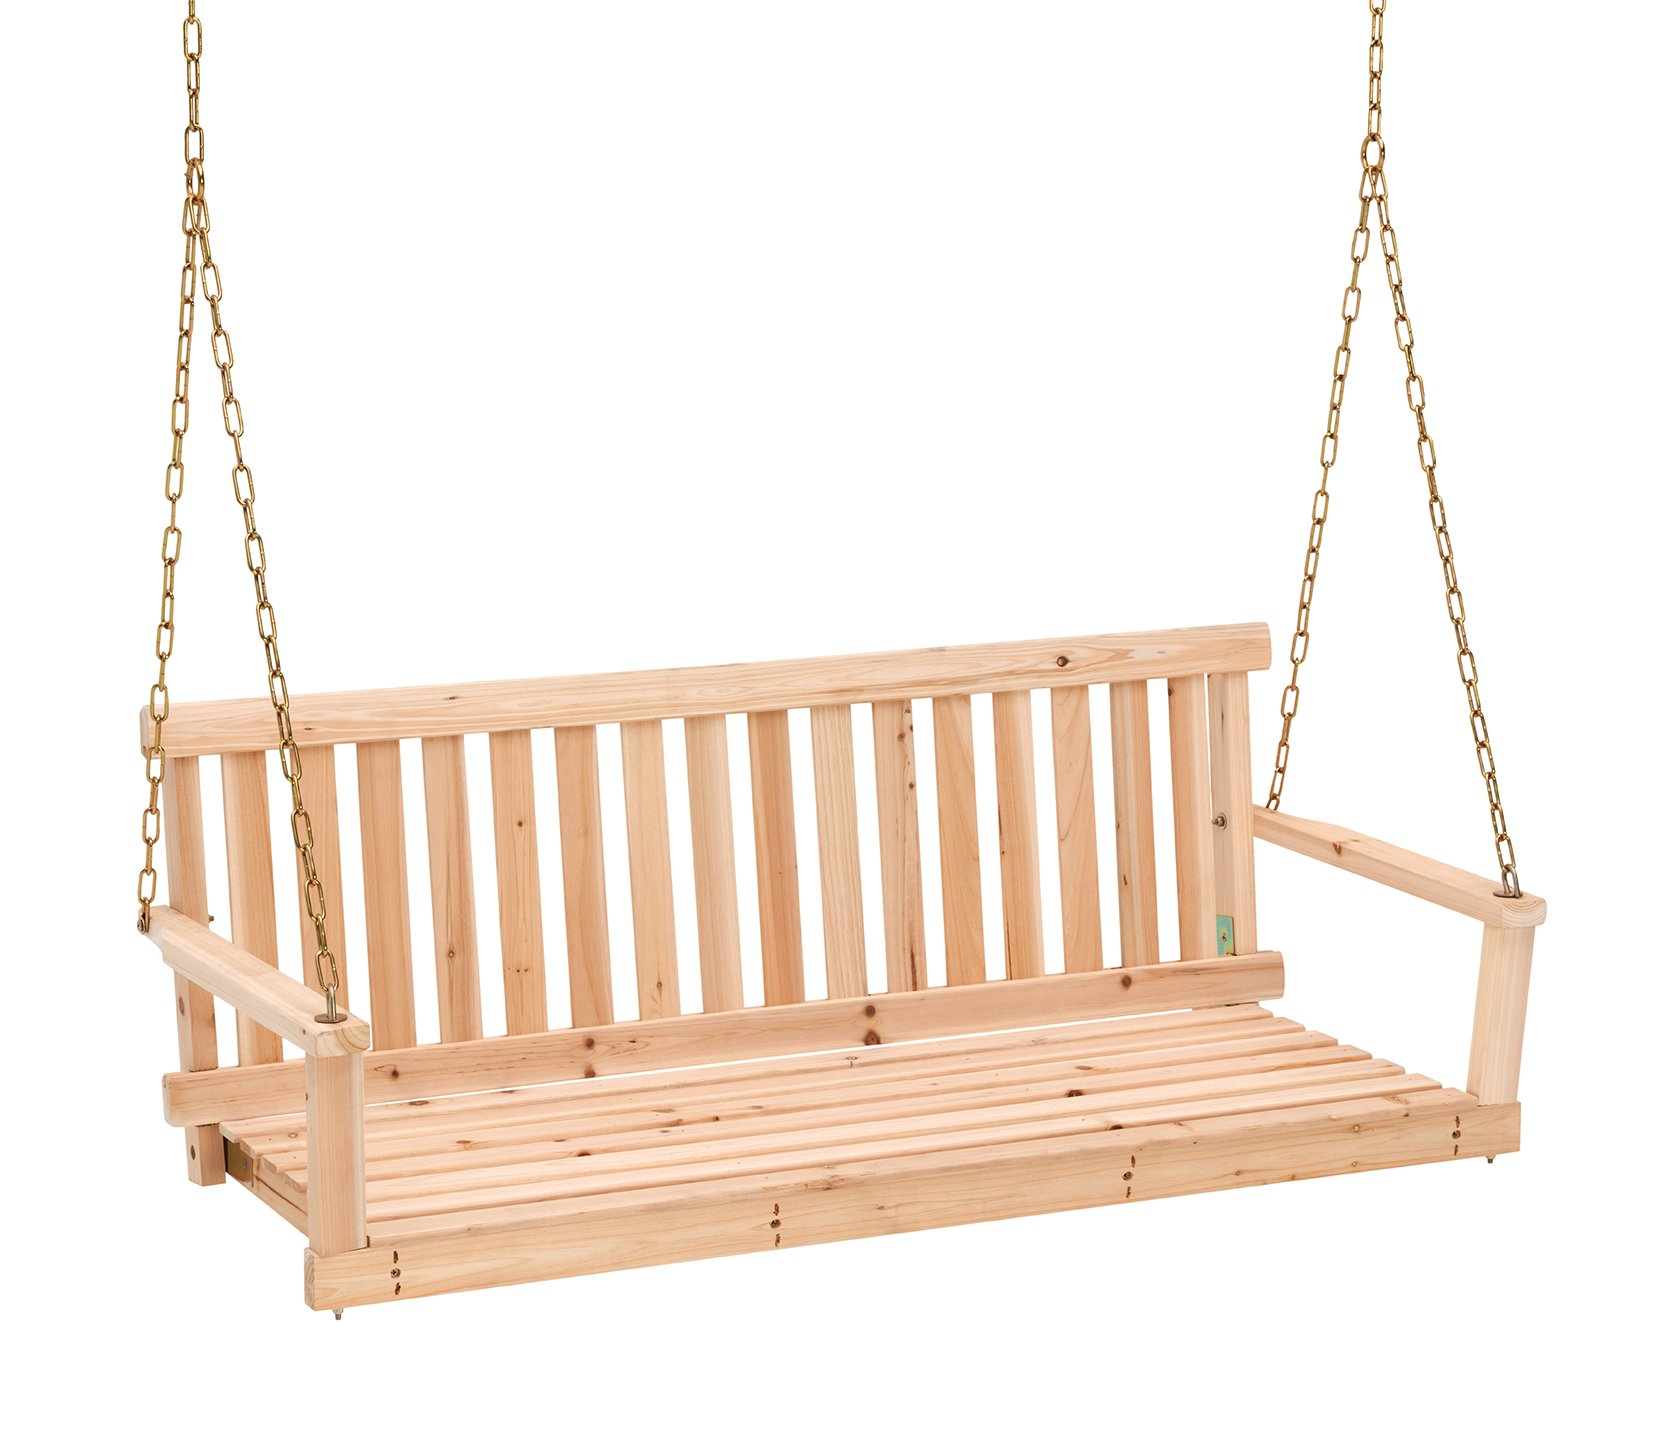 2 Person Front Porch Swing 4 Outdoor Garden Hanging Seat